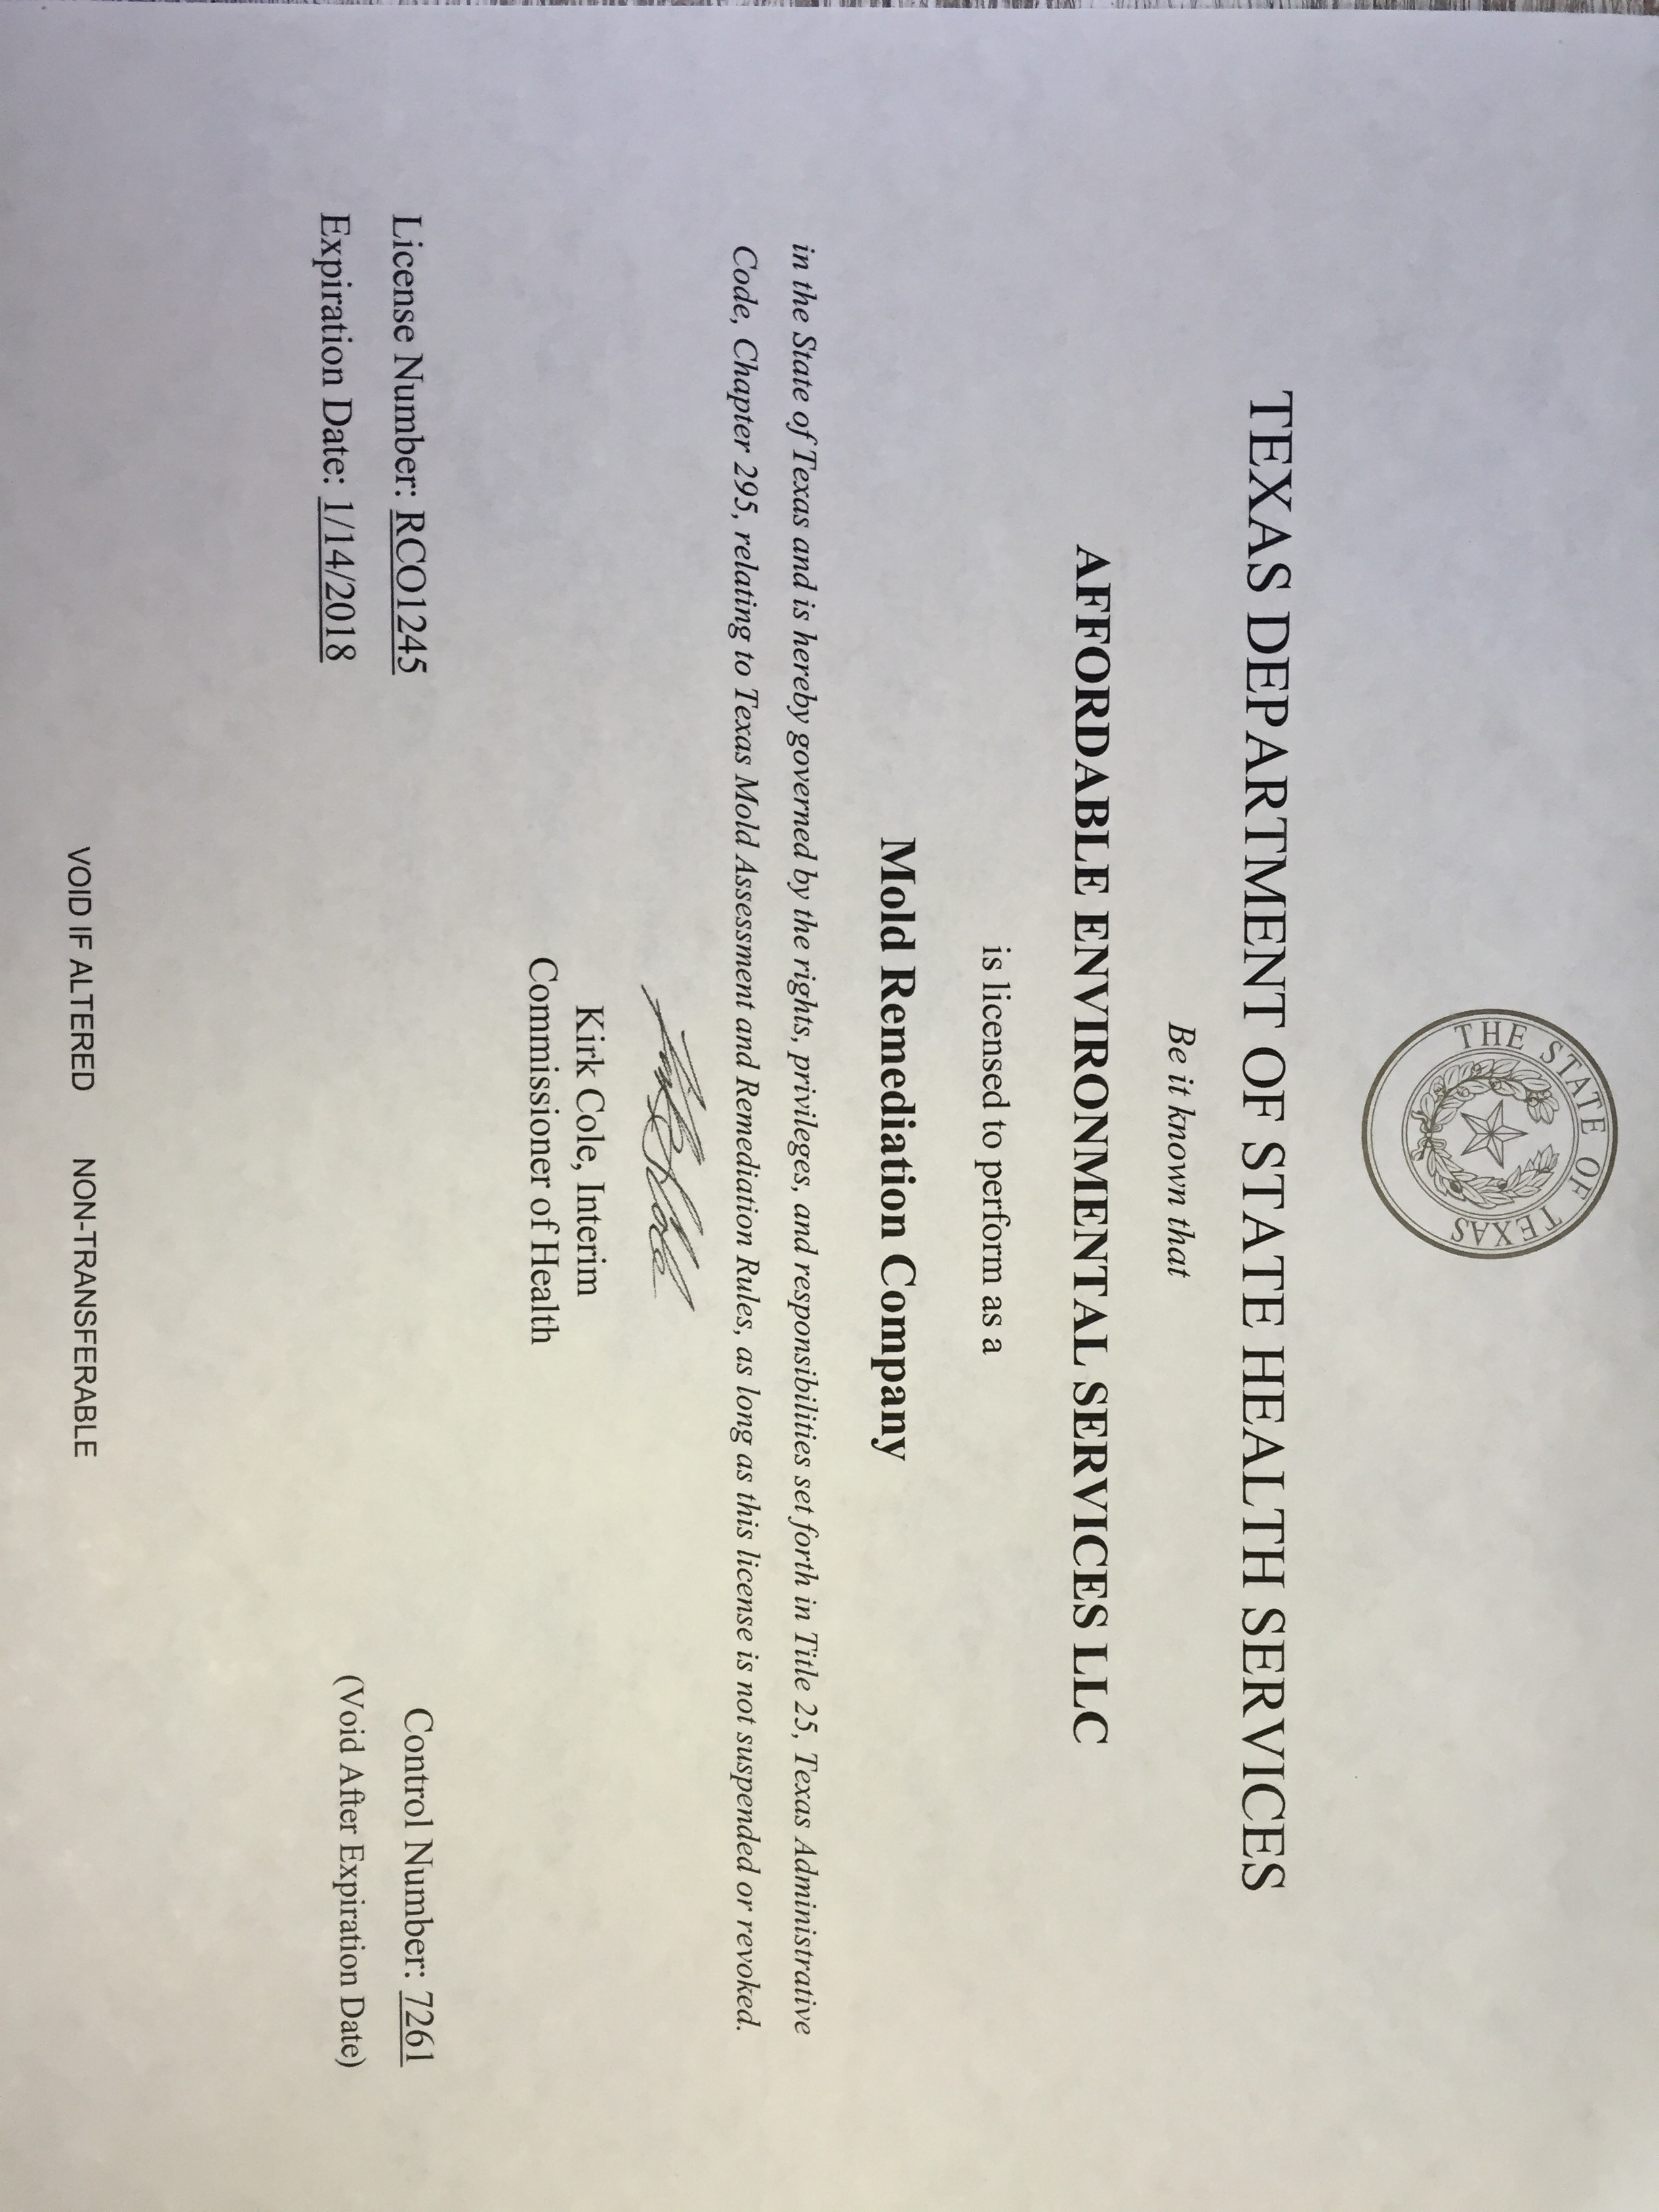 Affordable Environmental Services Llc Licenses Insurance